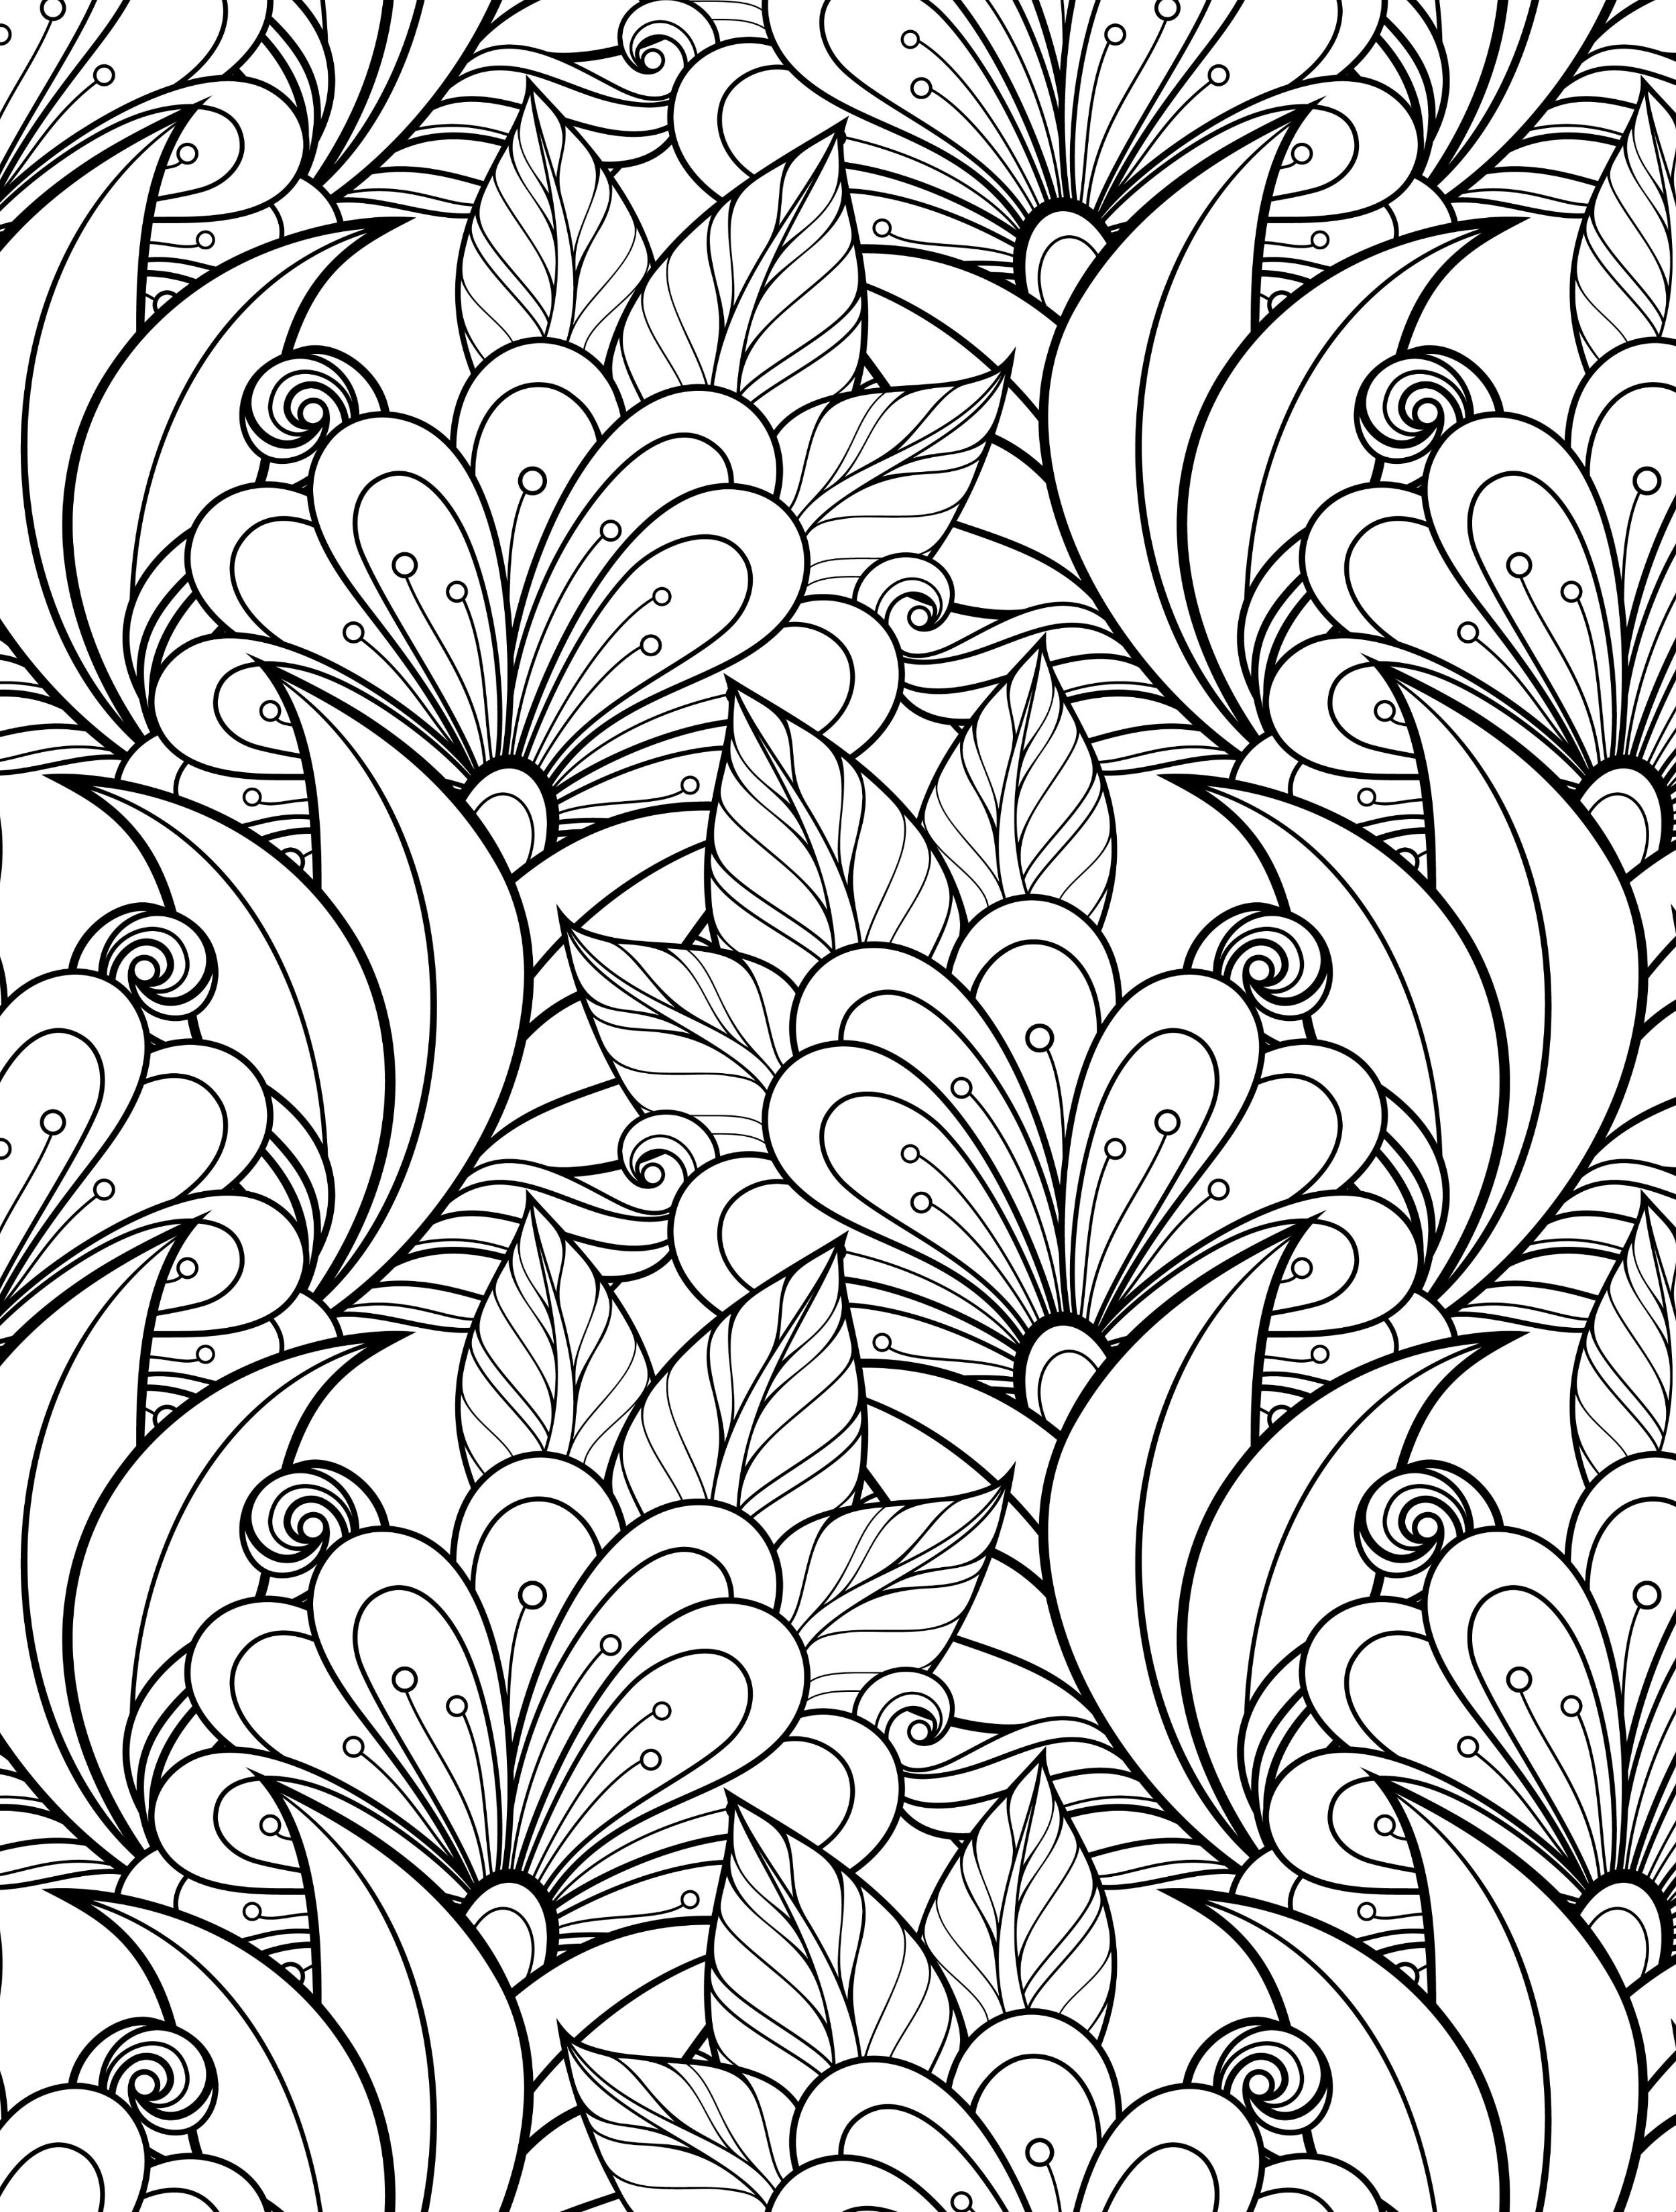 Printable coloring pages for adults flowers - 24 More Free Printable Adult Coloring Pages